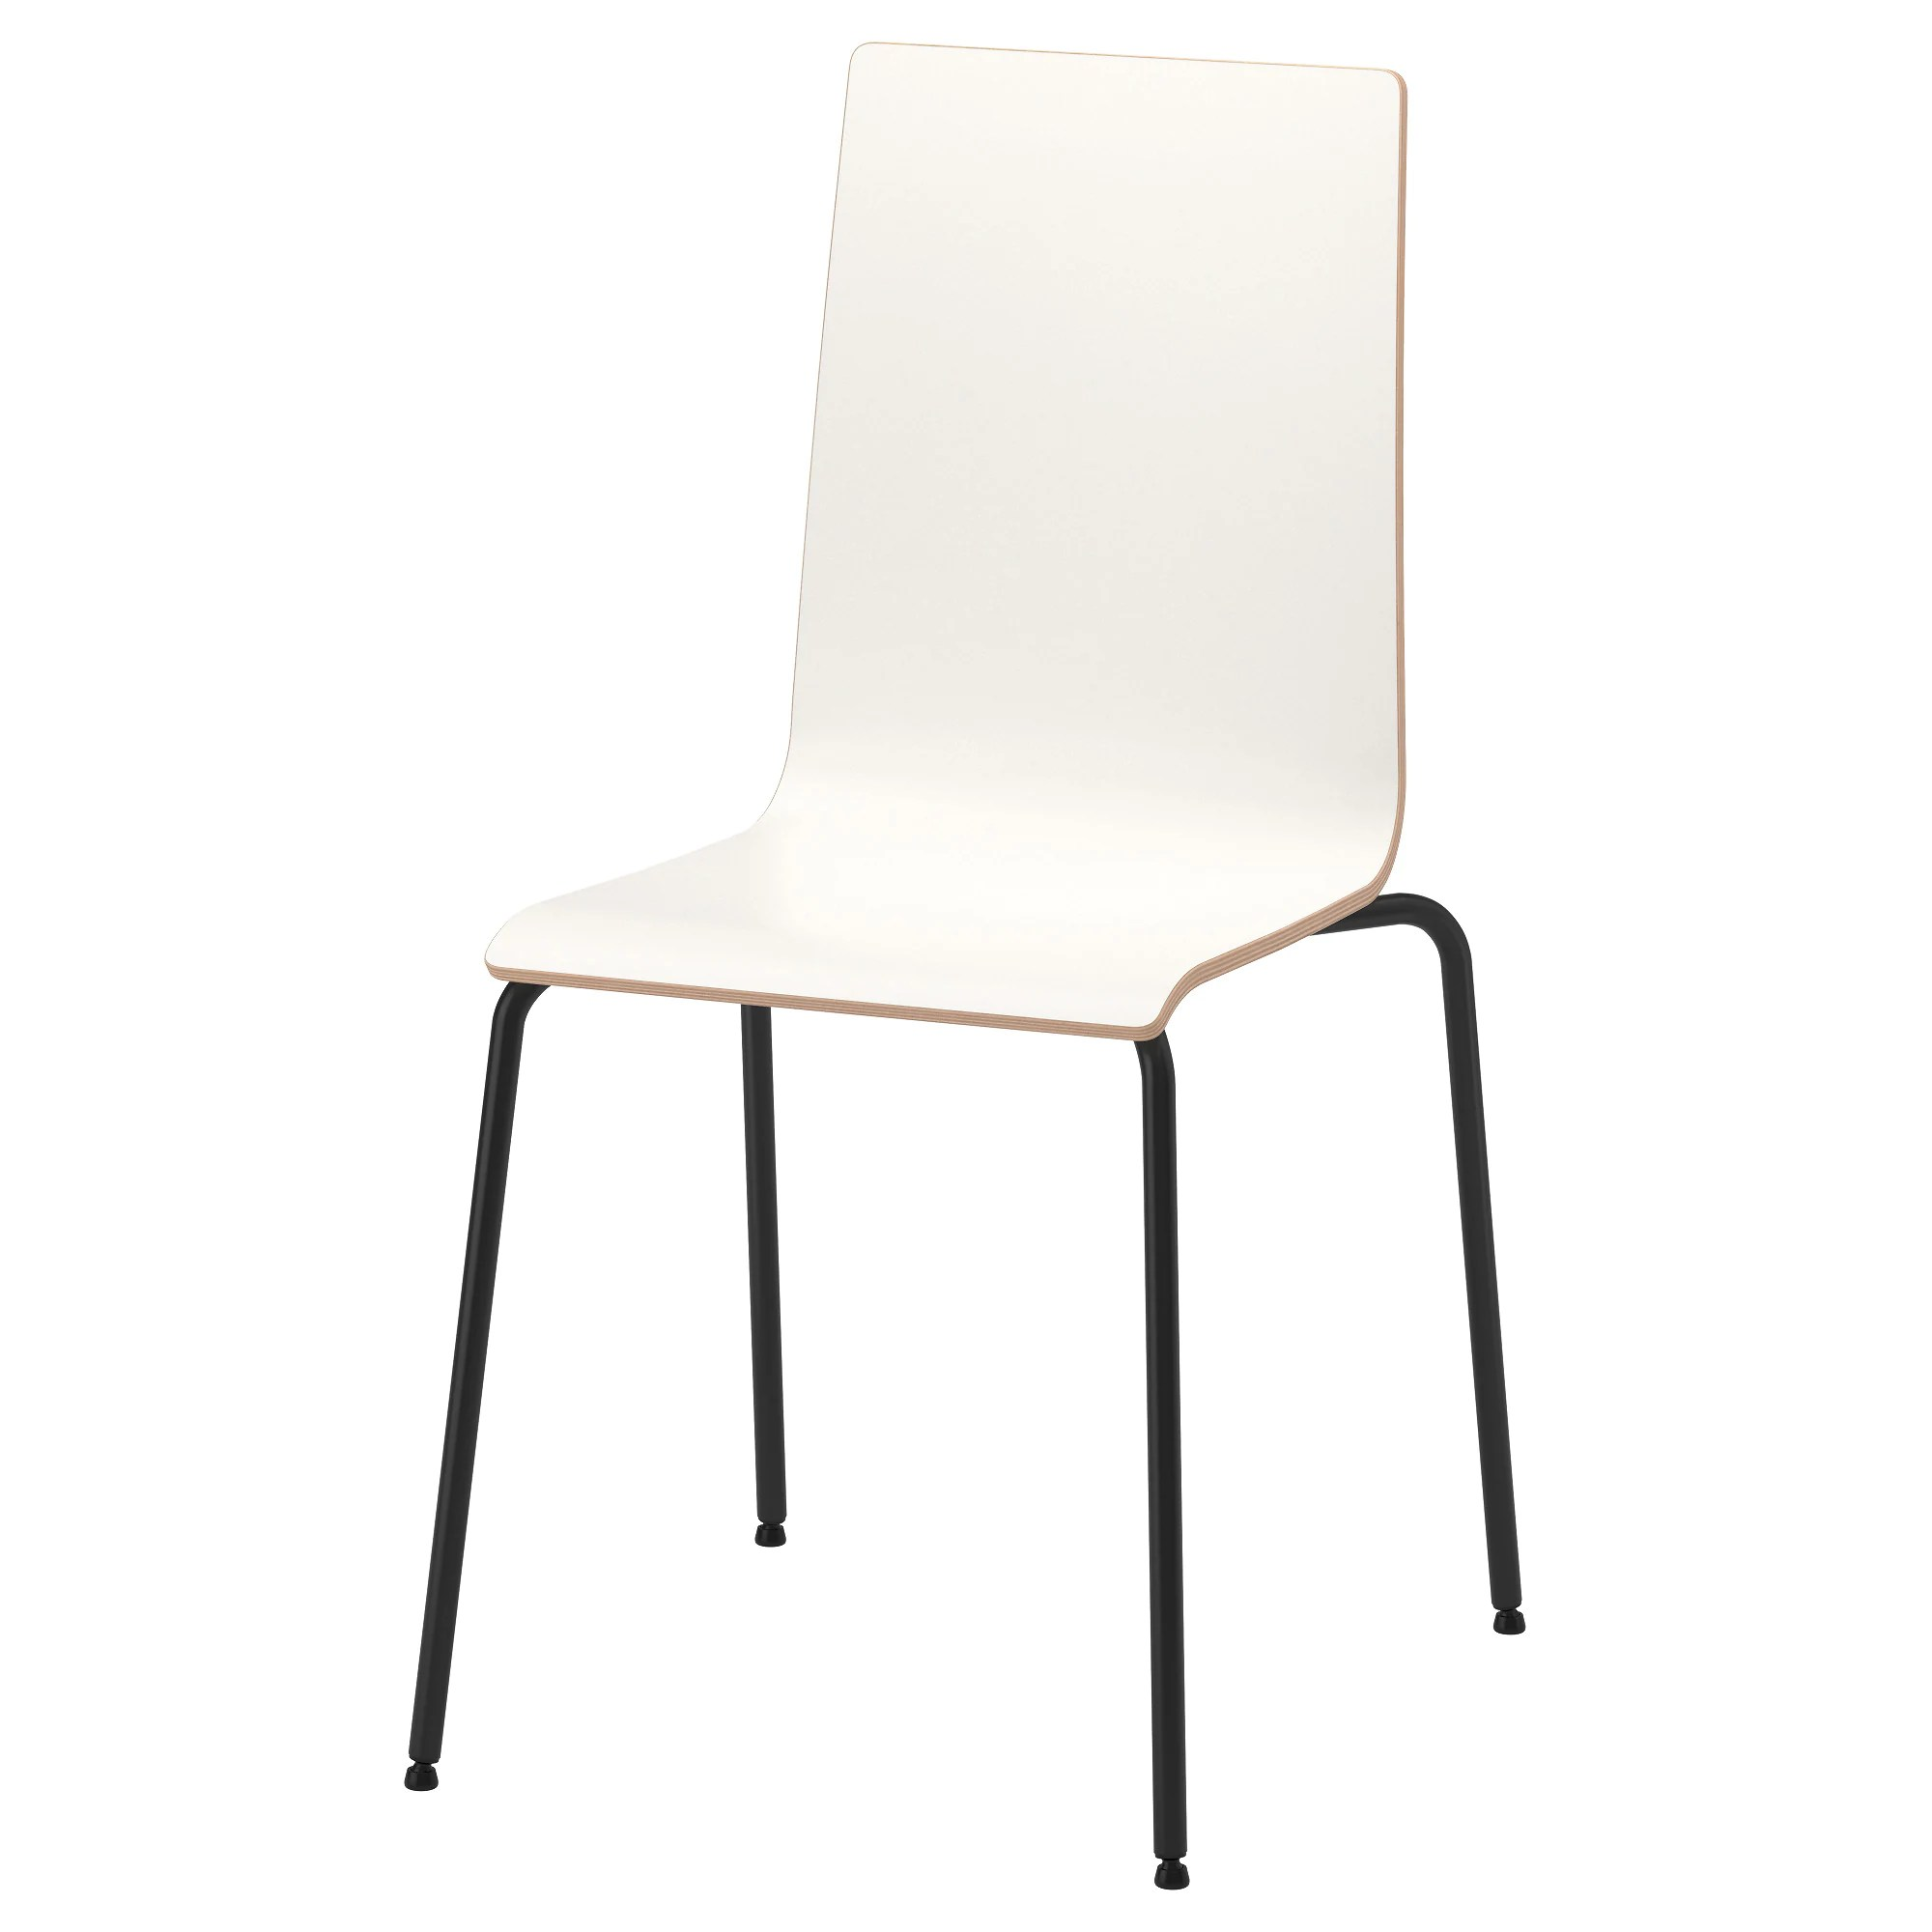 white chair ikea wicker dining chairs martin inter systems b v 1999 2019 privacy policy cookie terms conditions t c online store working at the group locator